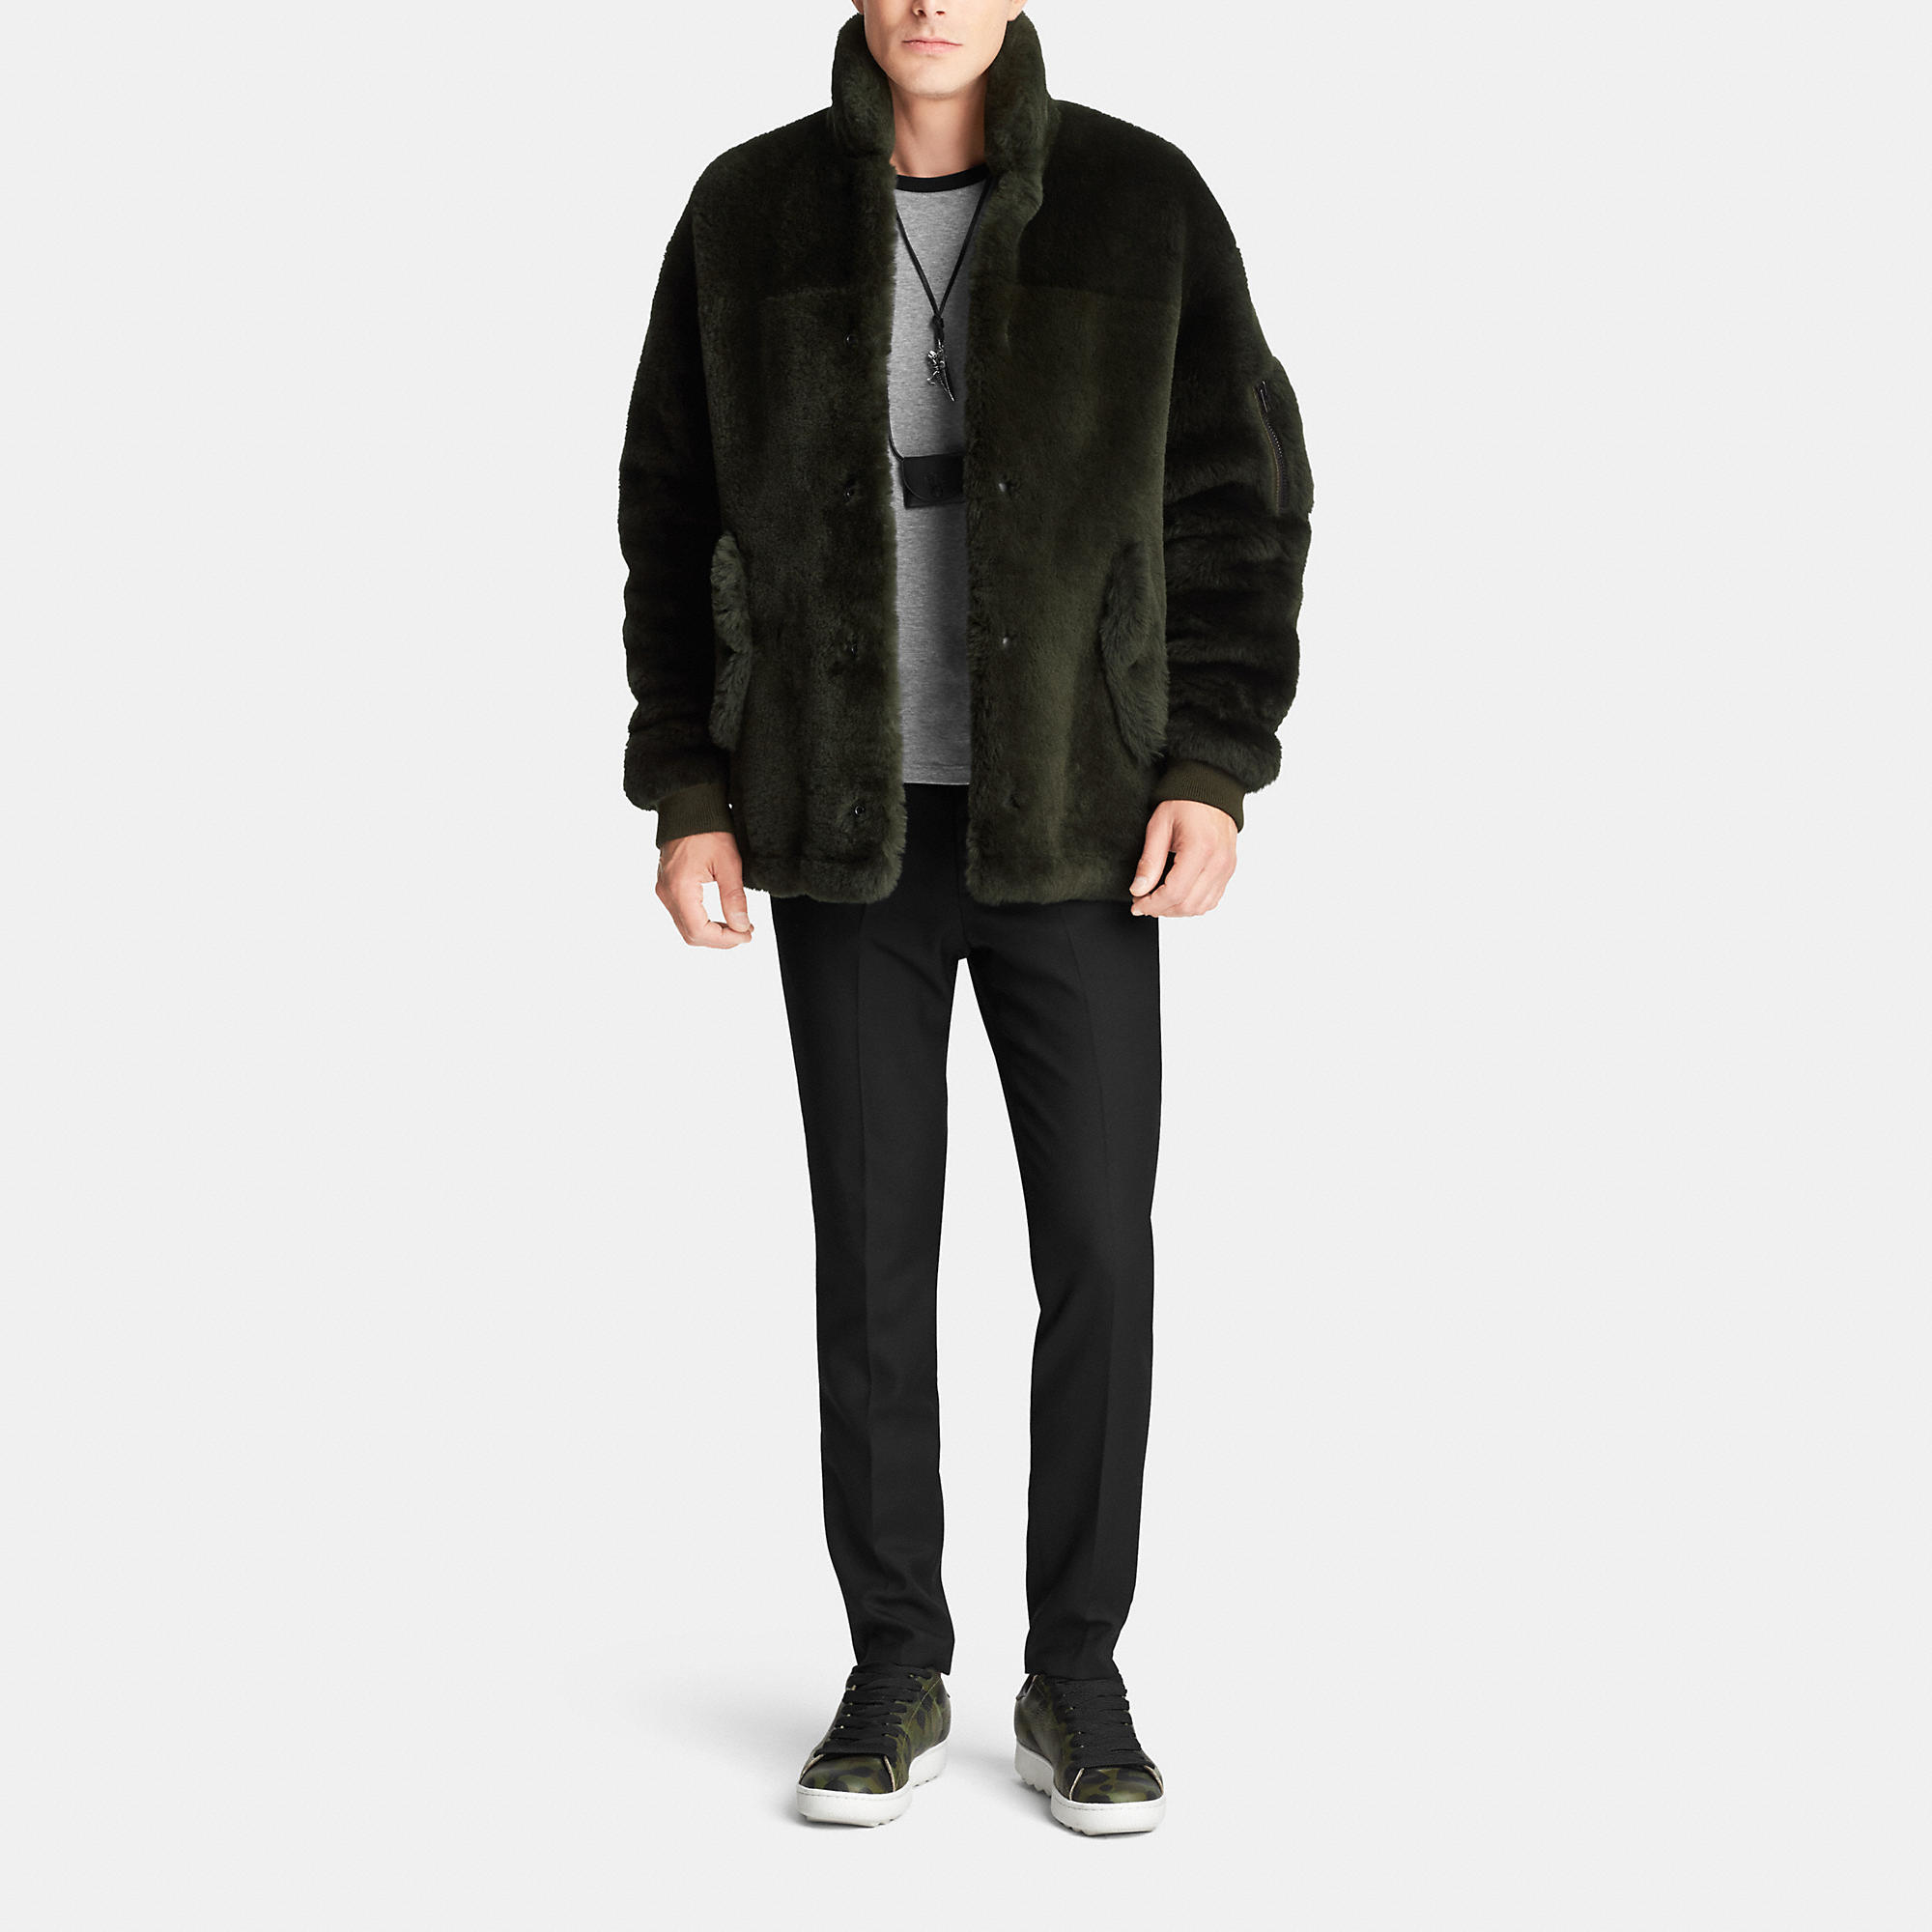 Lyst Track Coach Jacket Shearling for Men Green in SSHwprxq1